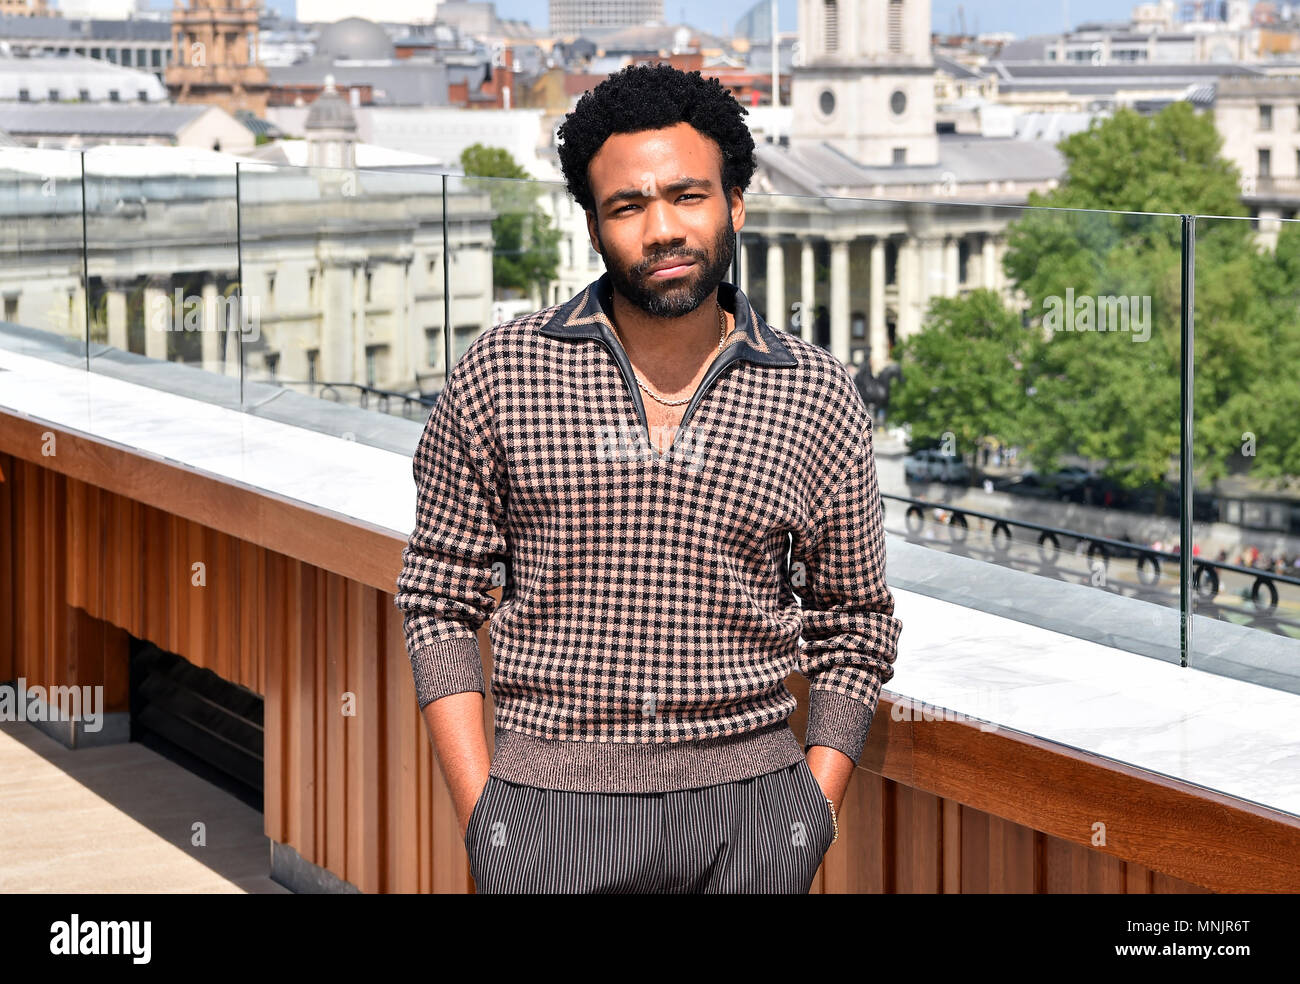 Donald Glover attending the photocall for Solo: A Star Wars Story at The Trafalgar St. James, London. - Stock Image